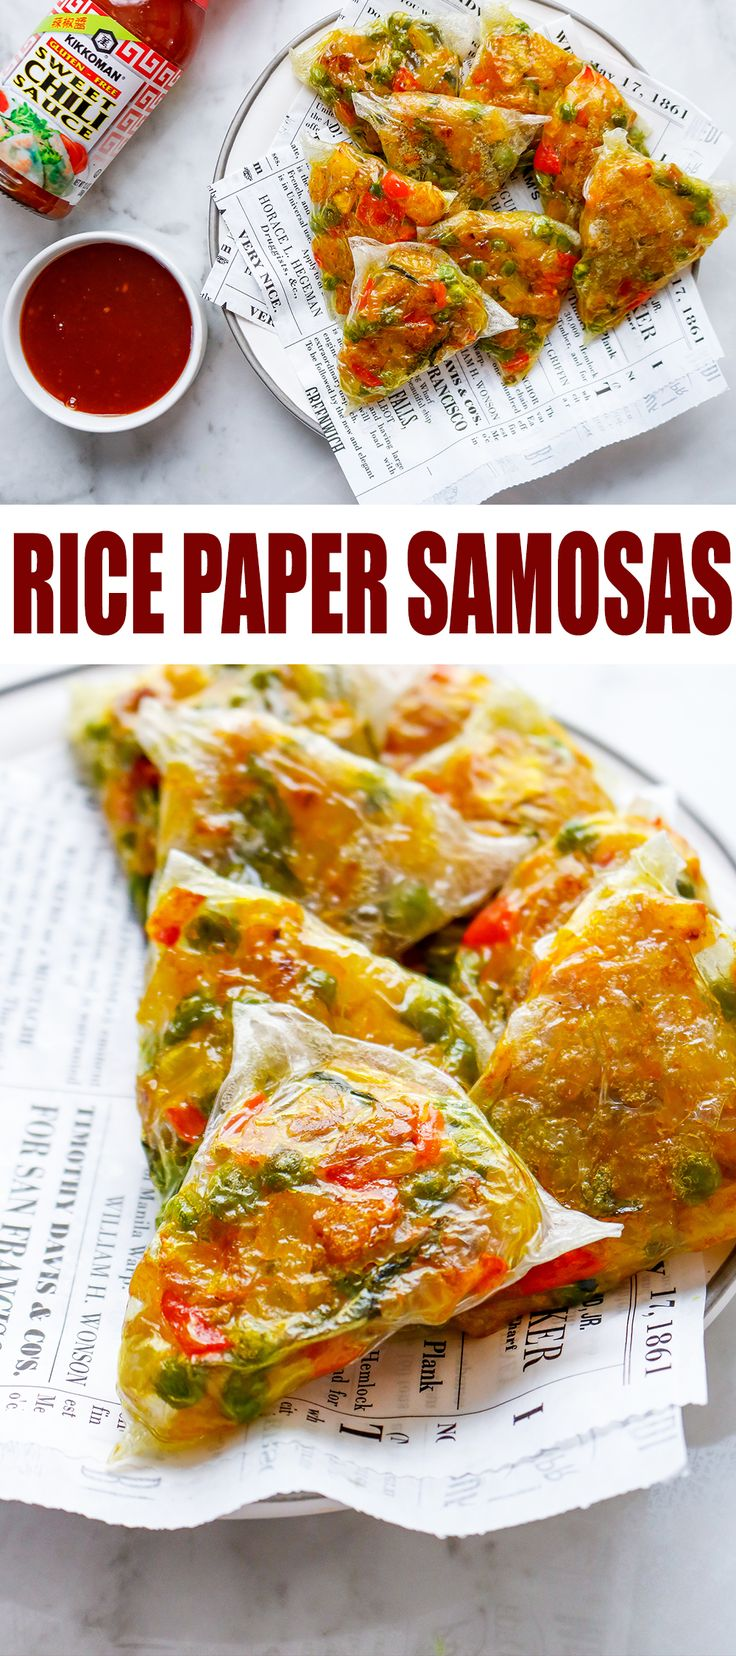 Crispy and Chewy Rice Paper Samosas Recipe Full meal